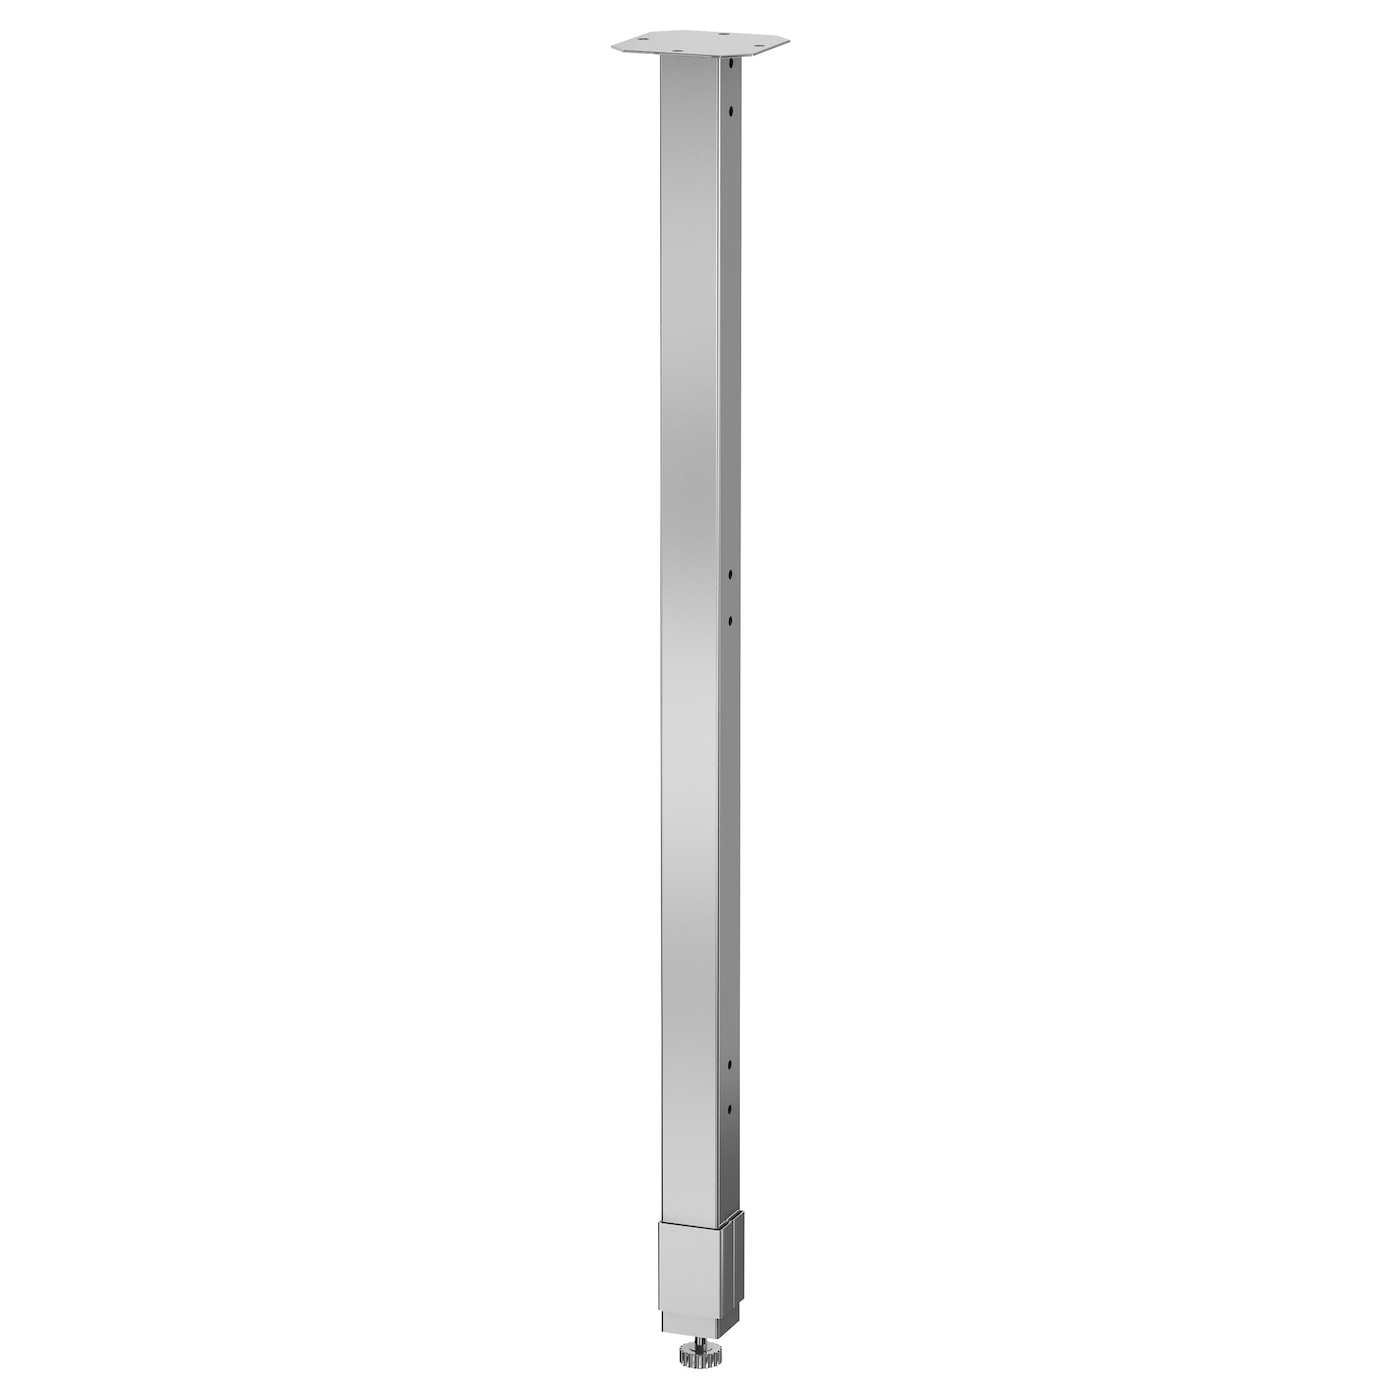 IKEA UTBY leg Stands steady also on uneven floors thanks to the adjustable legs.